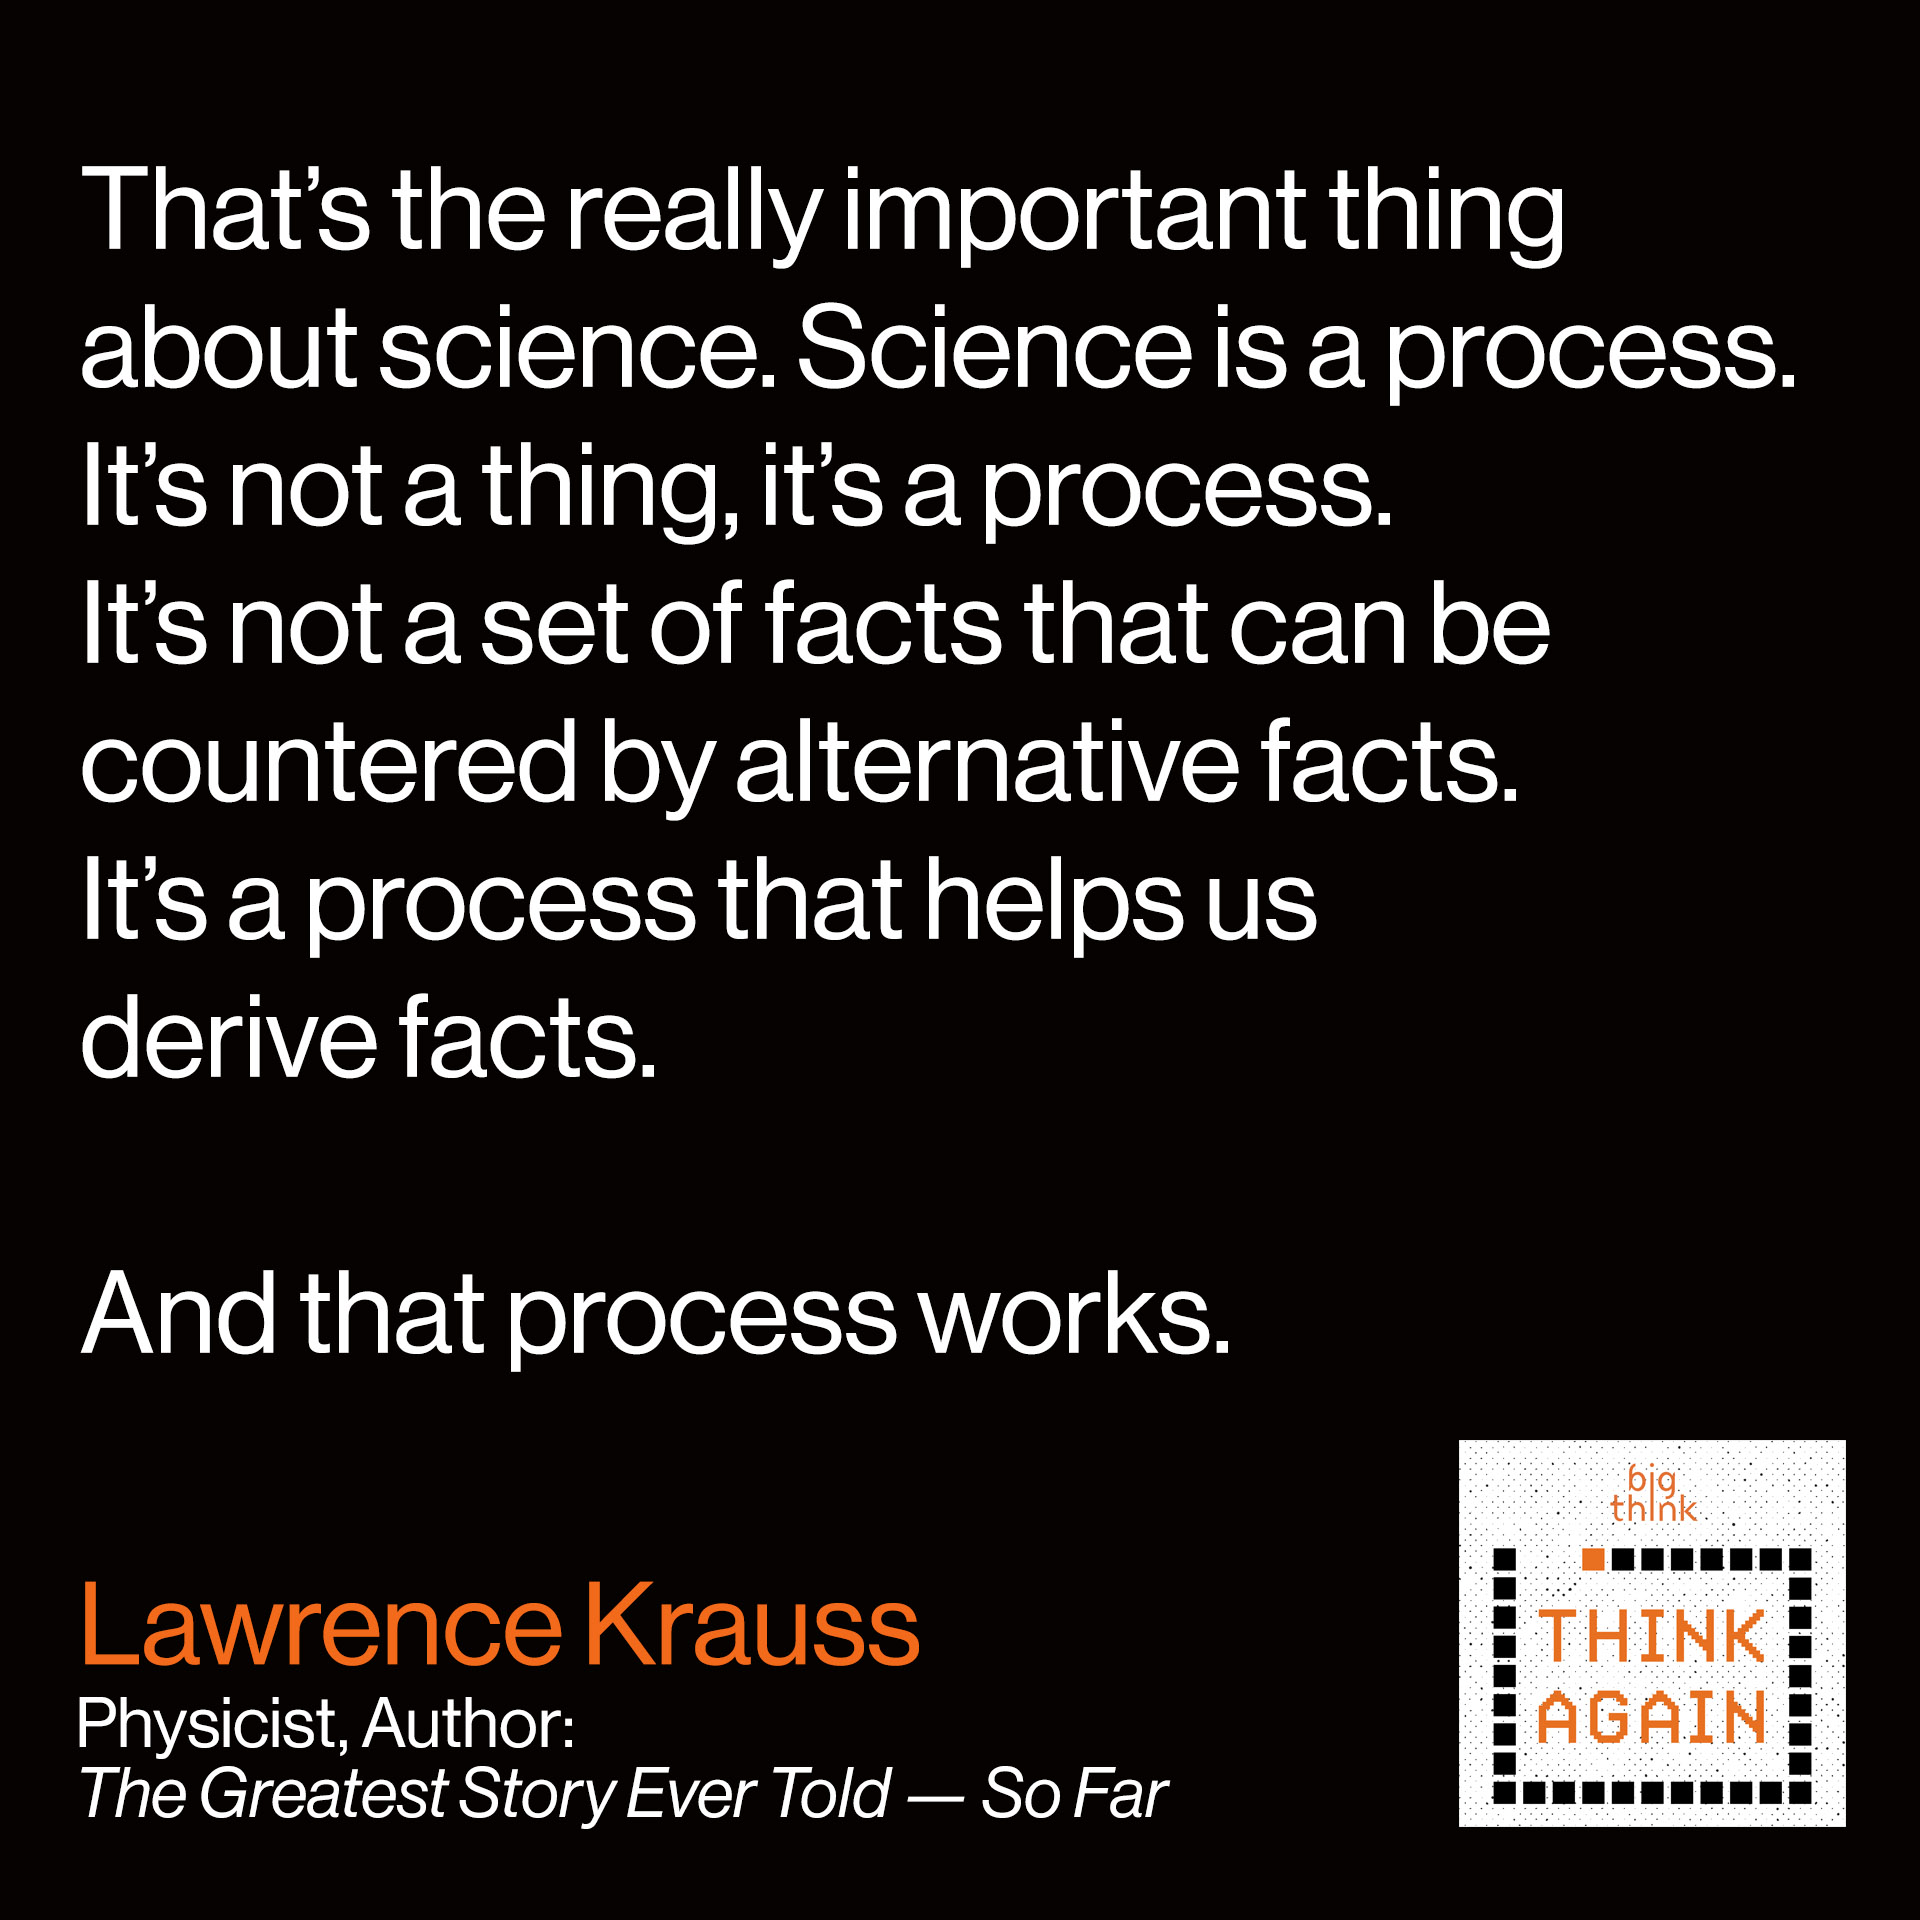 Lawrence Krauss: That's the really important thing about science. Science is a process. It's not a thing, it's a process. It's not a set of facts that can be countered by alternative facts. It's a process that helps us derive facts. And that process works.